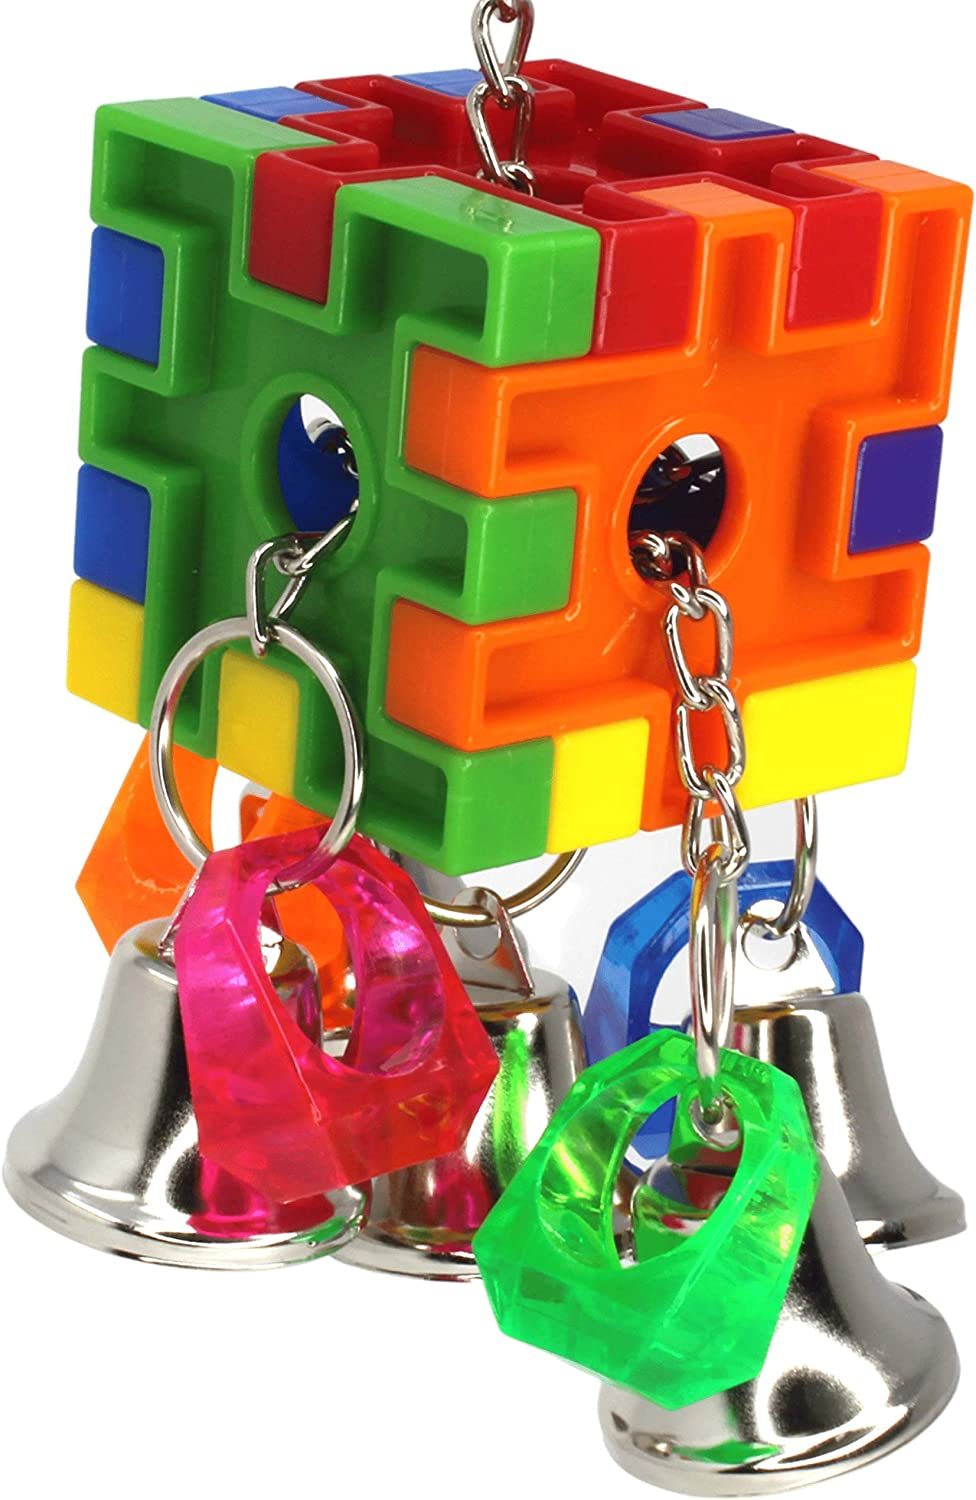 Bonka Bird Toys 3475 Bell Pull Regular store Toy Small Challenge the lowest price of Japan Cube